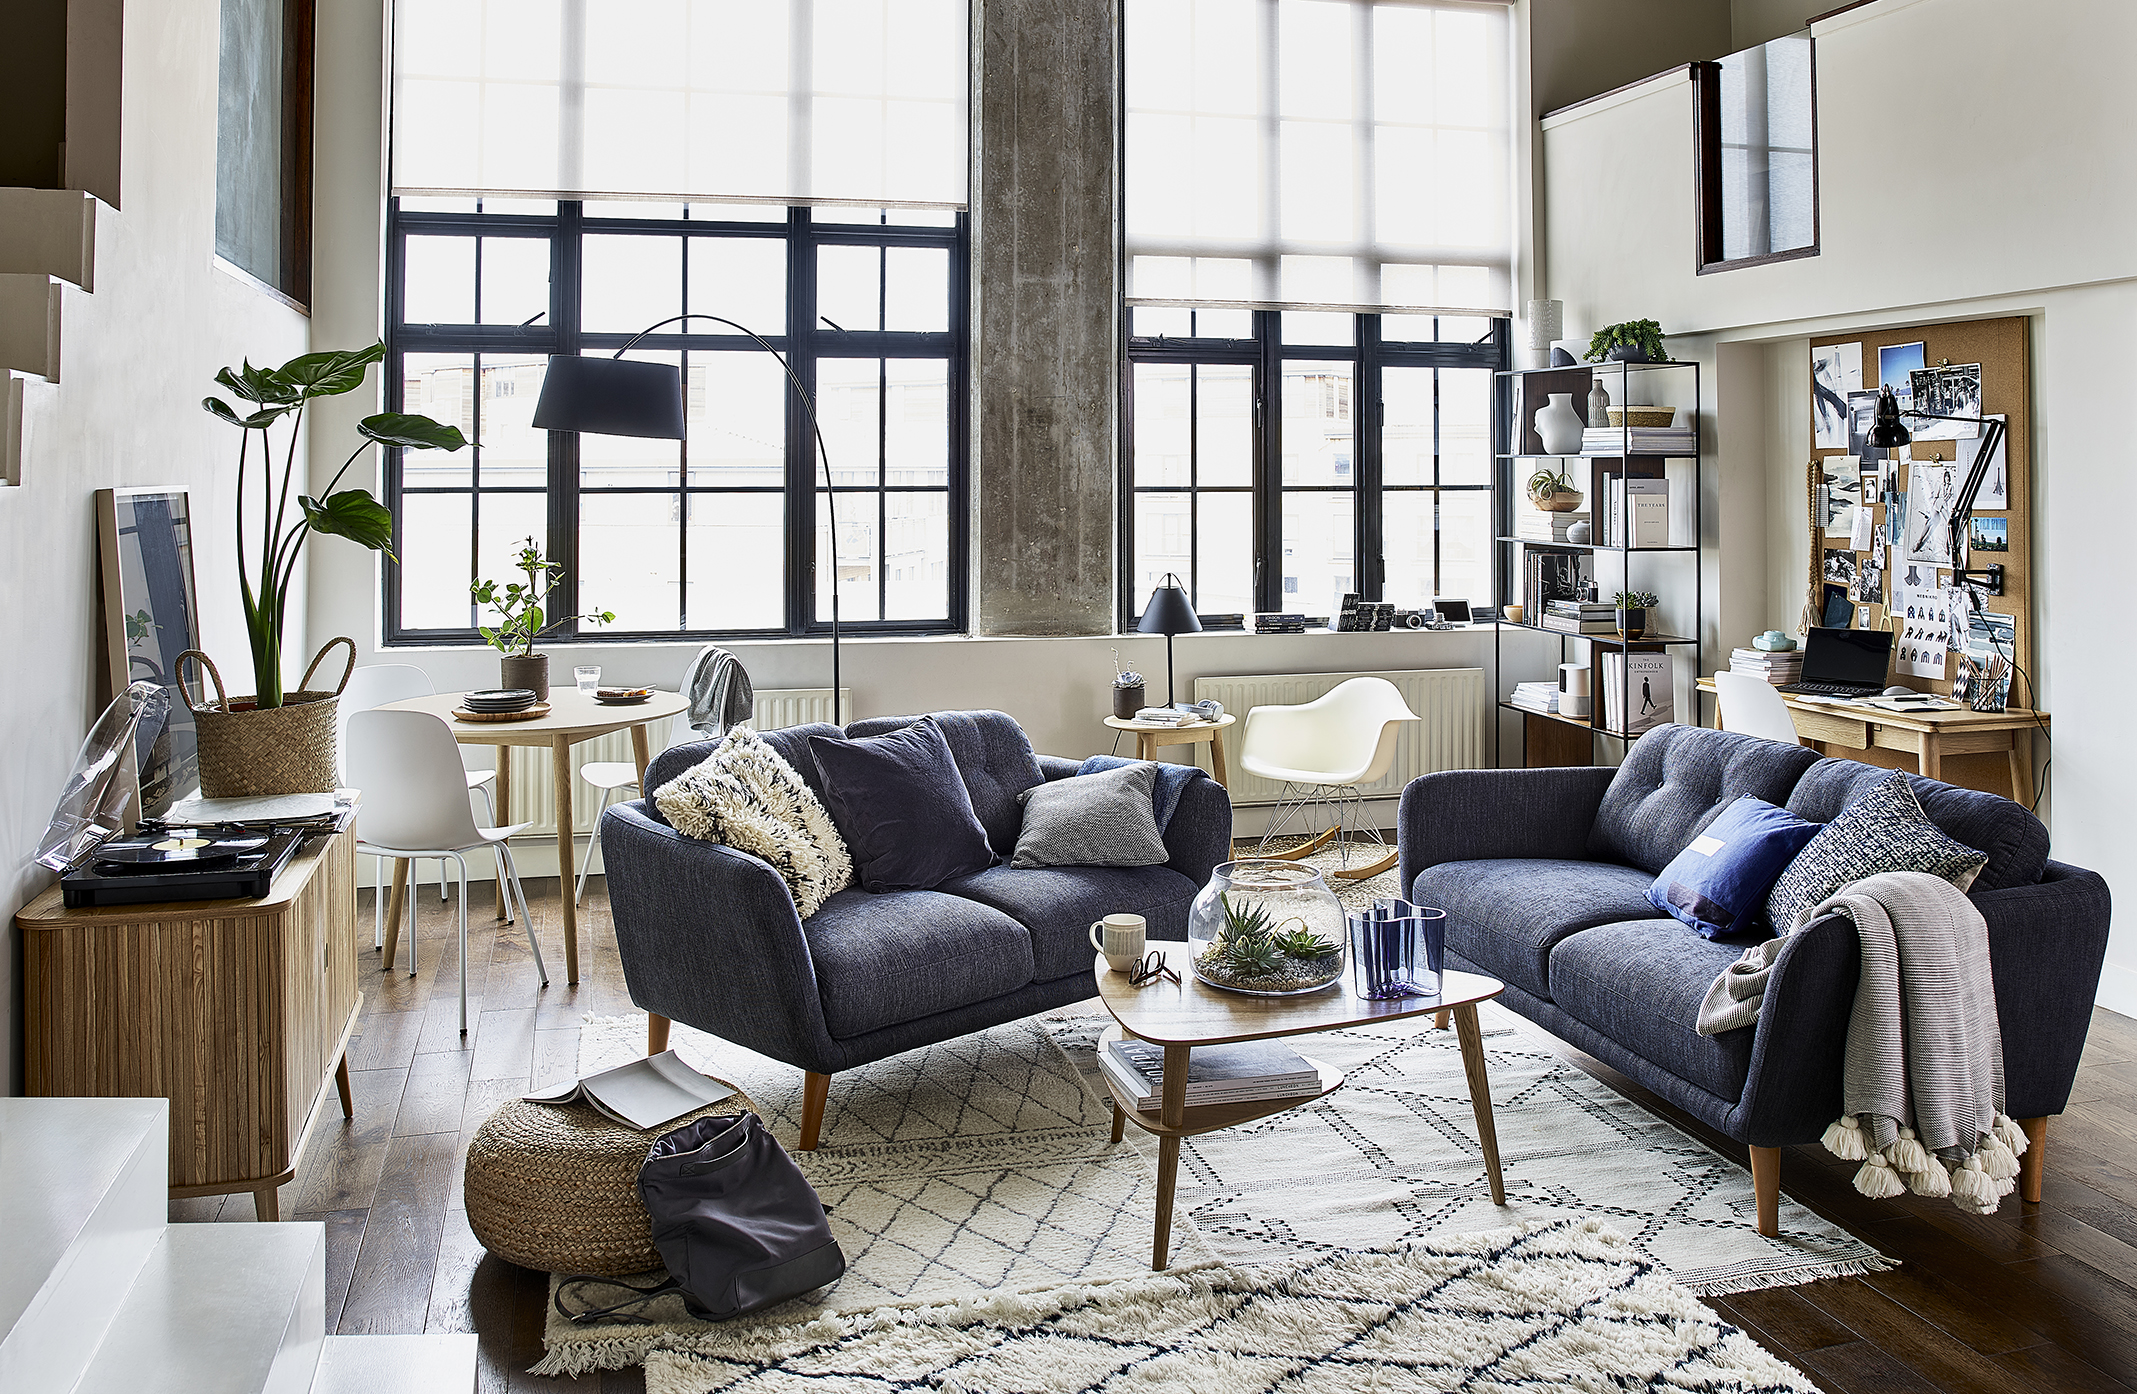 Living room layout ideas: 7 ways to make the most of your space ...